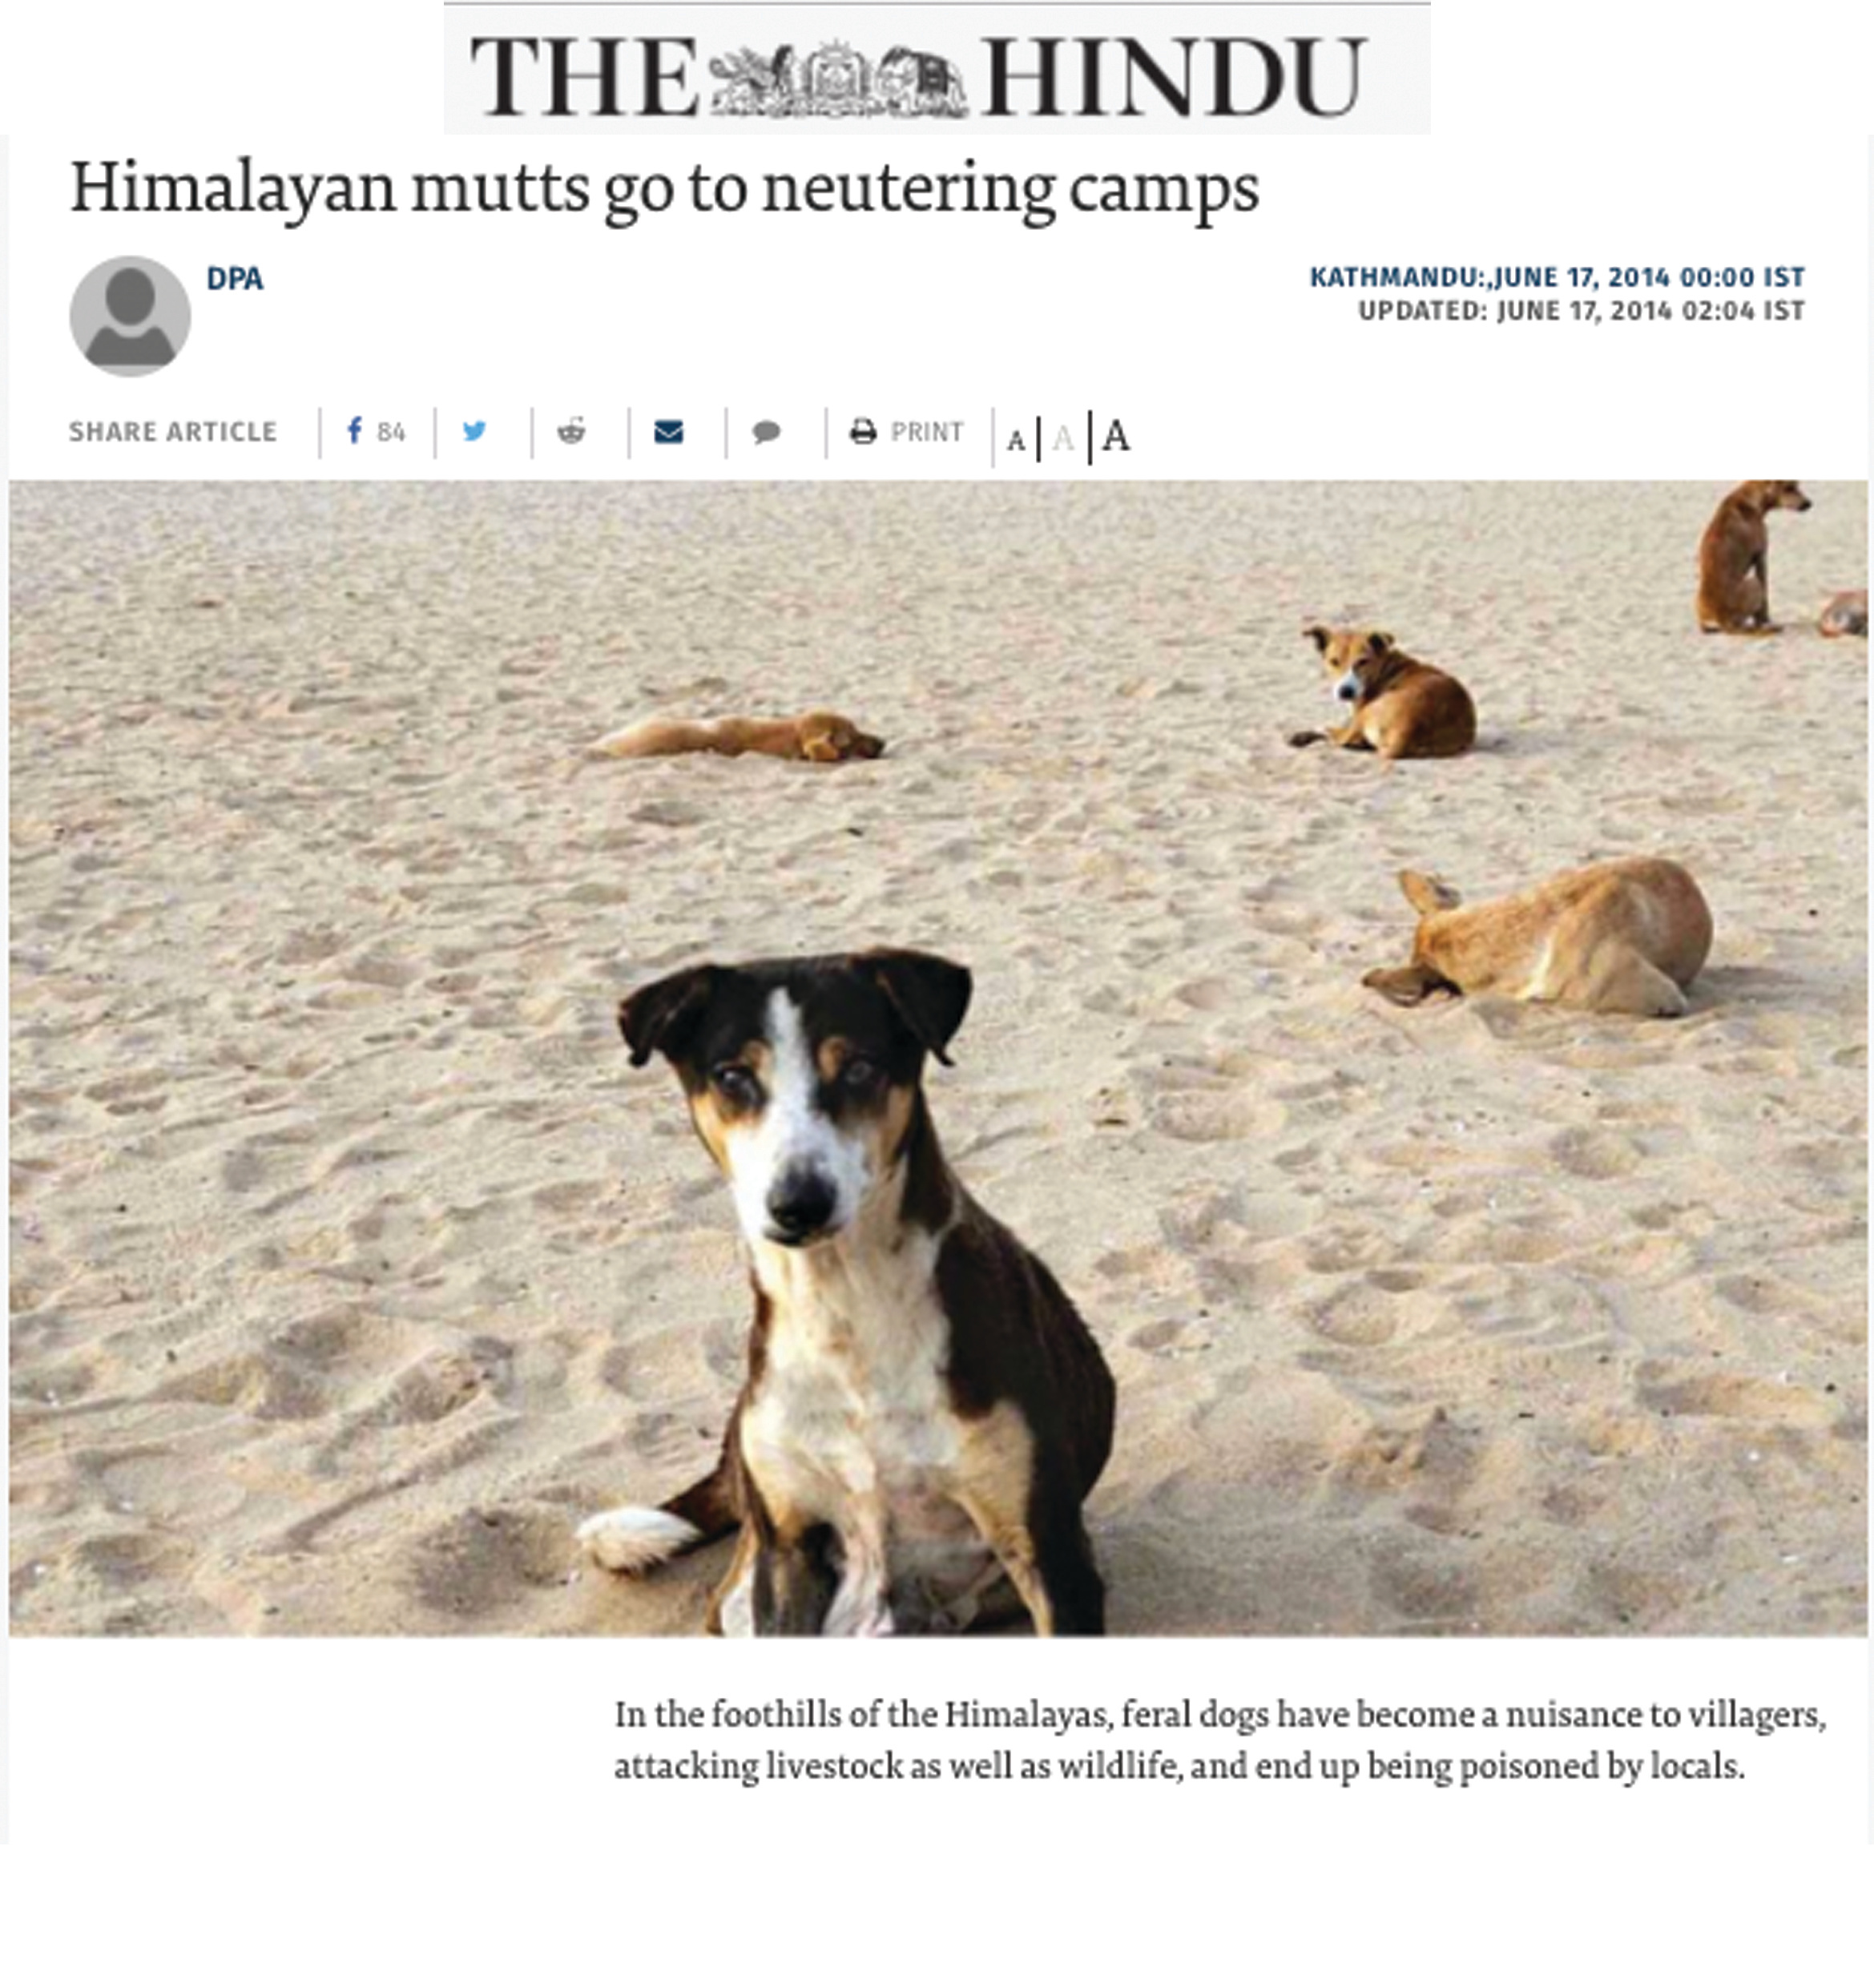 The Hindu, 17 Jun 2014